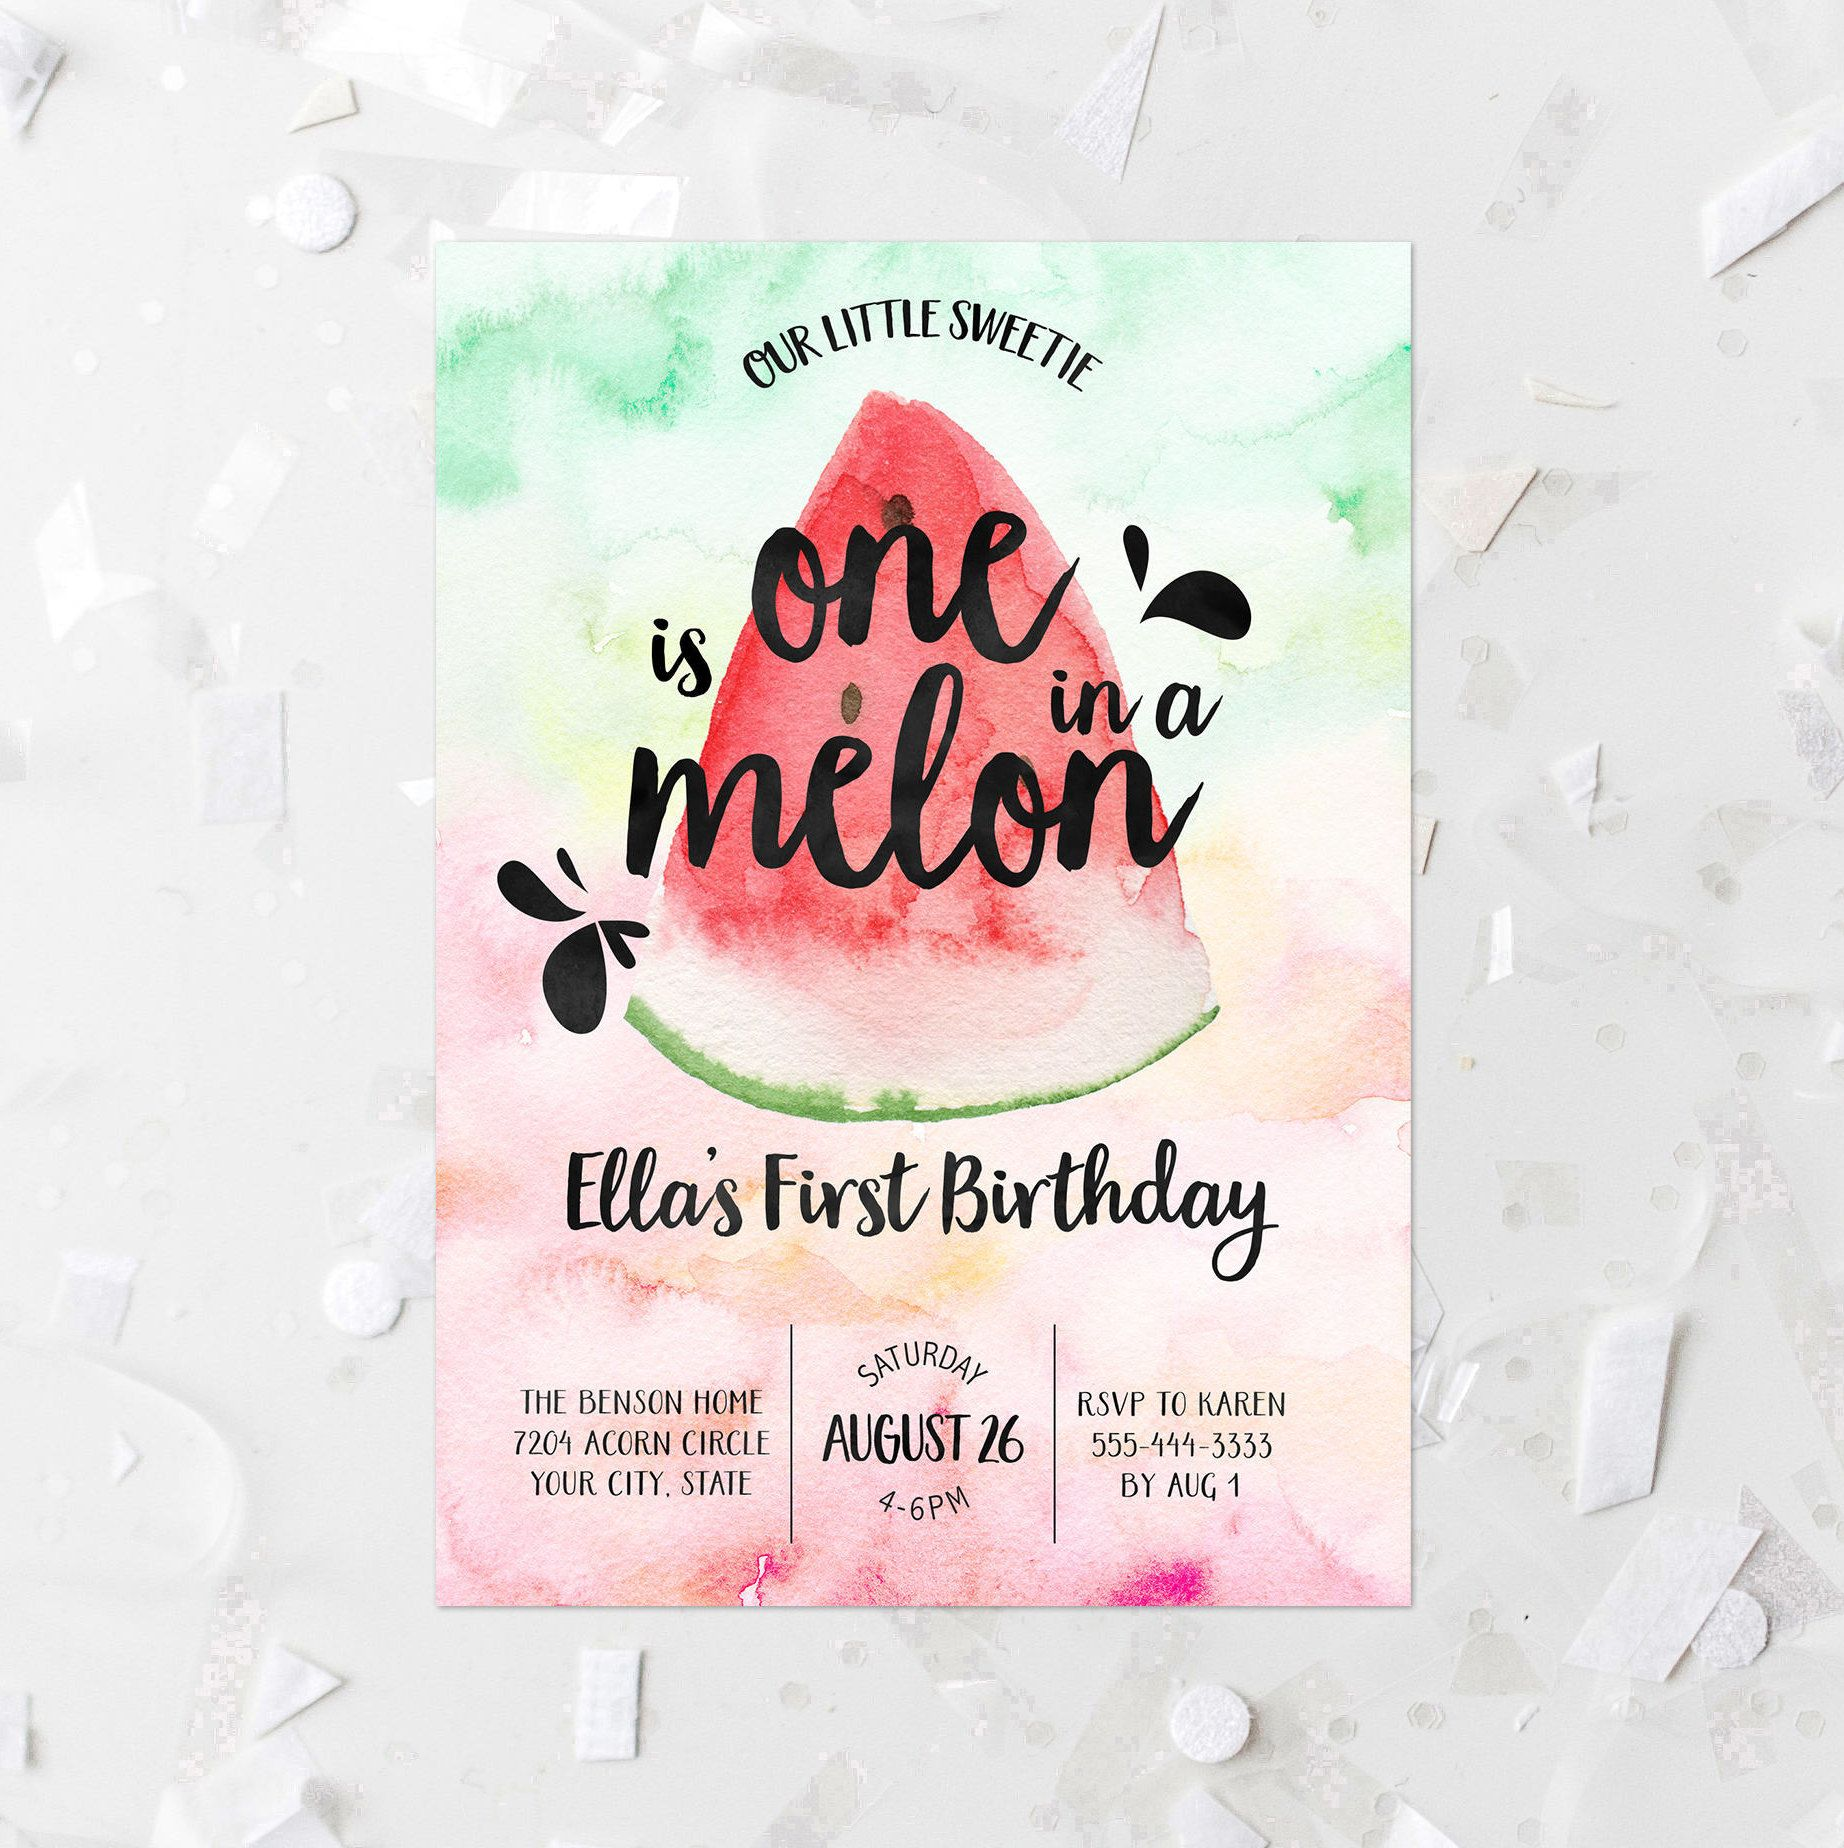 Watermelon First Birthday Party Invitation, Editable Template One